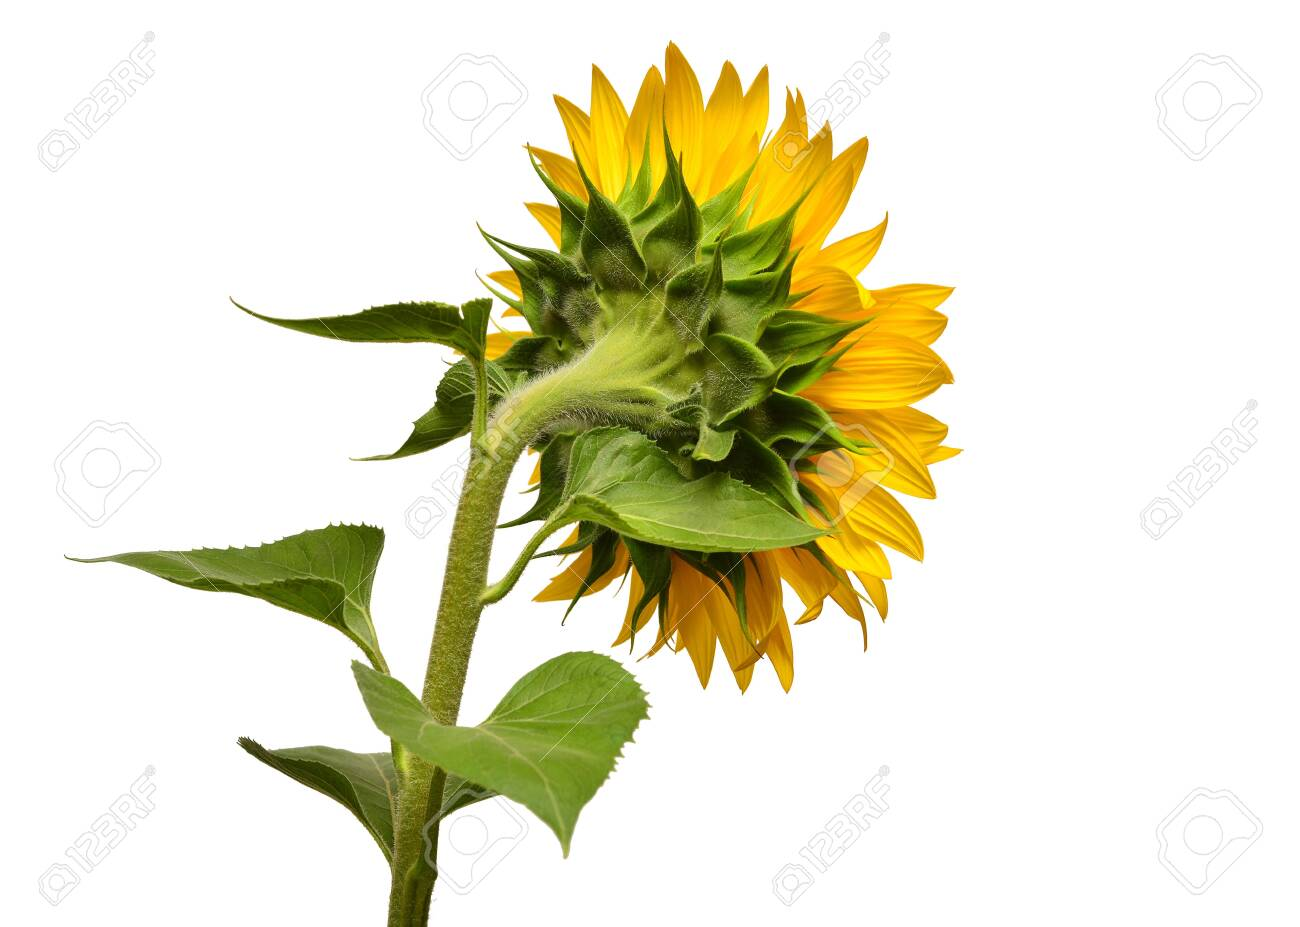 Sunflower turned sideways isolated on white background. Sun symbol. Flowers yellow, agriculture. Seeds and oil. Flat lay, top view. Bio. Eco. Creative - 143211660